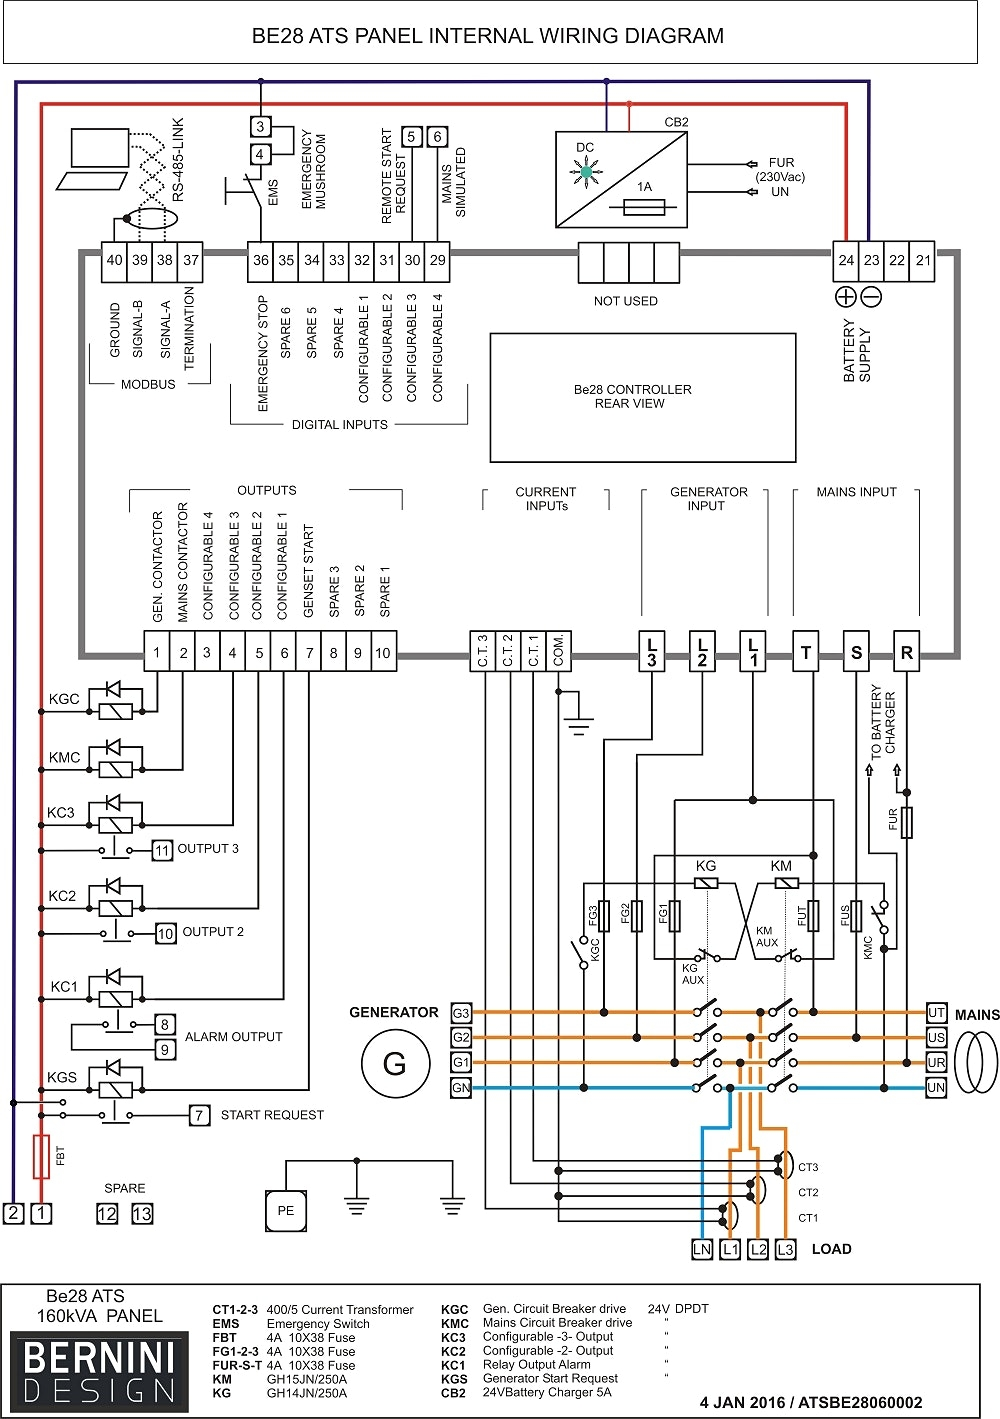 lenel access control wiring diagram Collection-Lenel Access Control Wiring Diagram And Beauteous Carlplant In Inside 1320 3-b